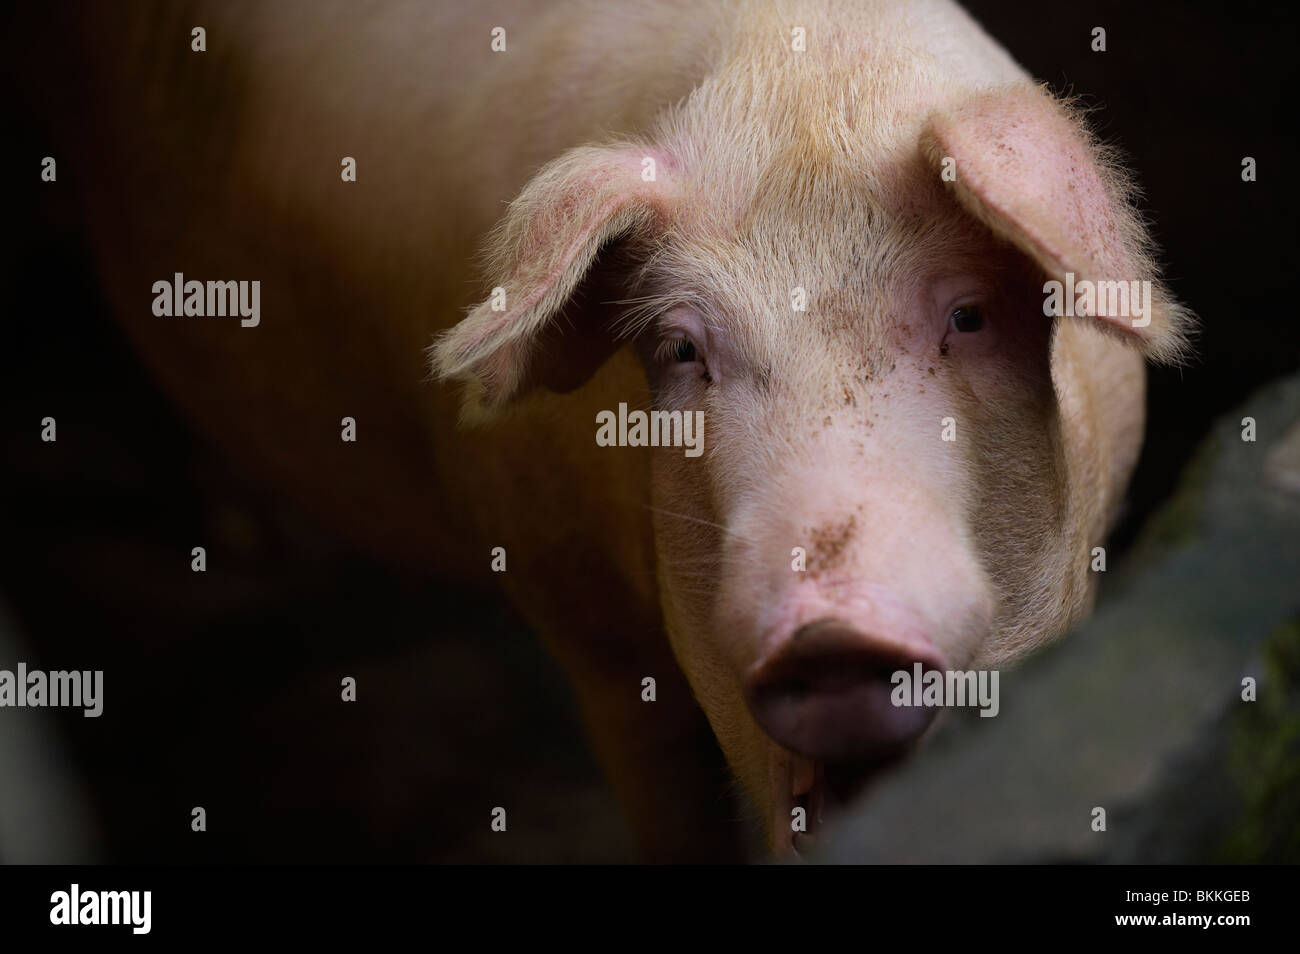 Pig in pen - Stock Image